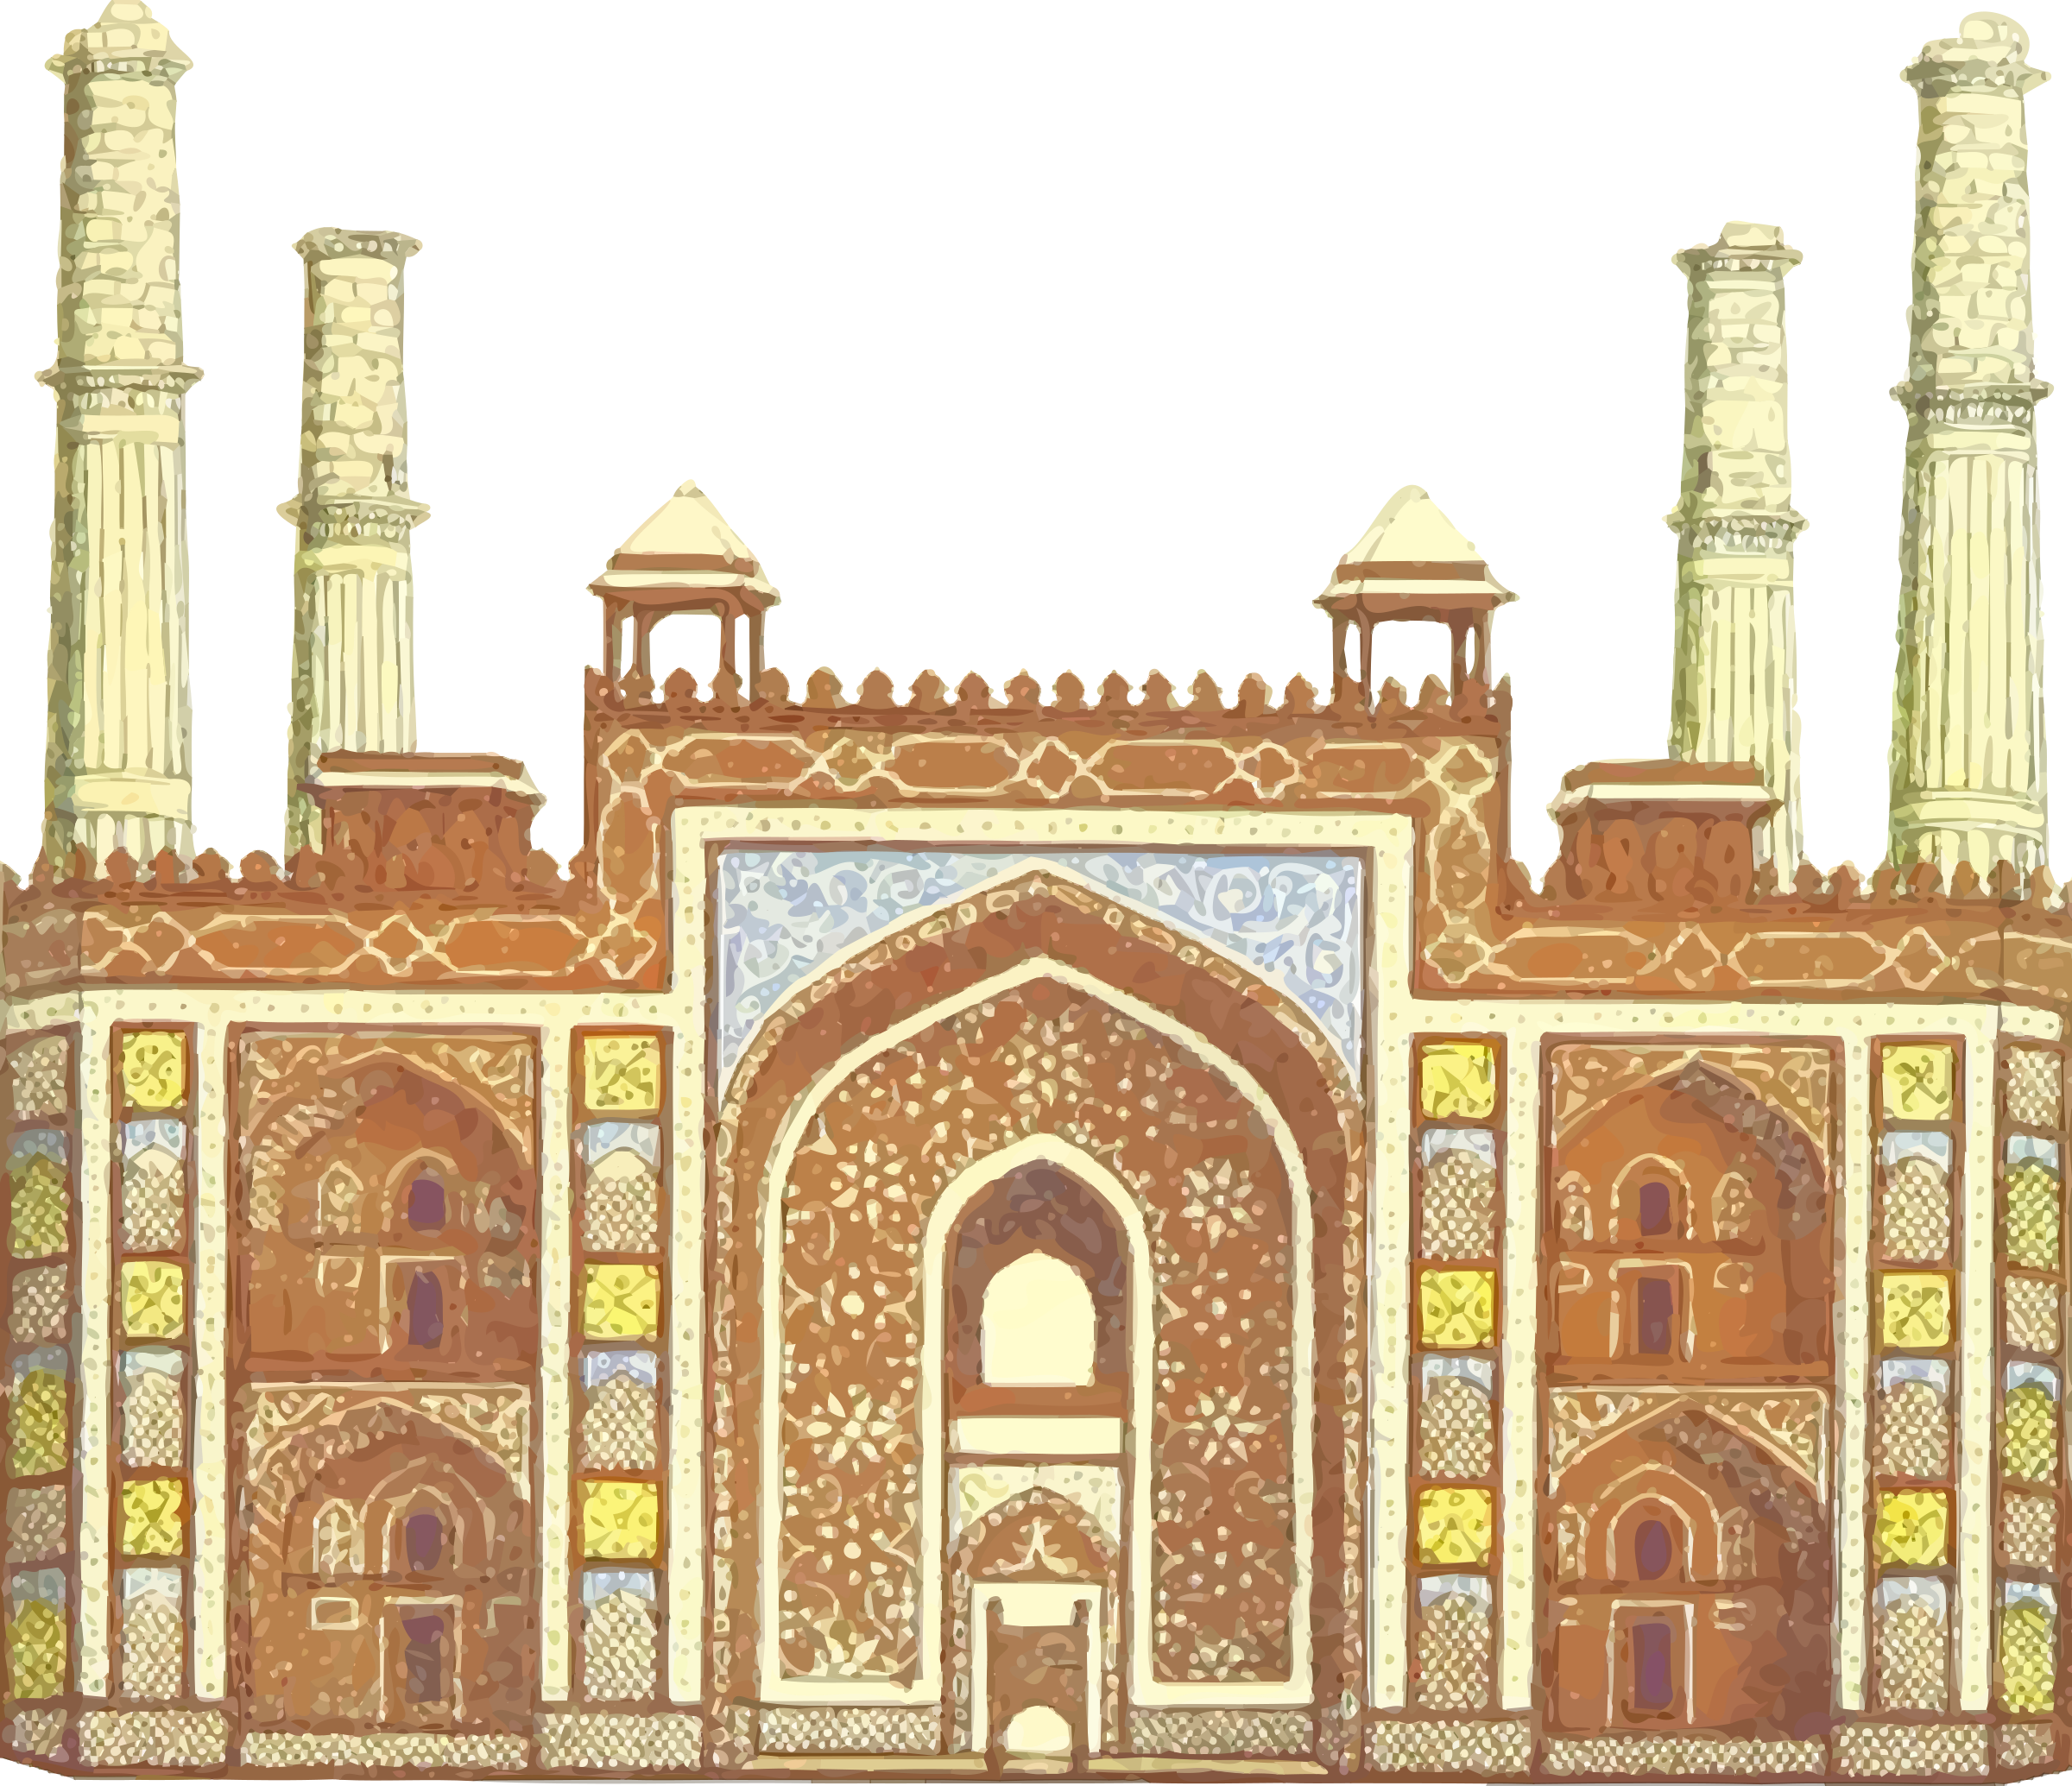 Akbar's tomb by Firkin